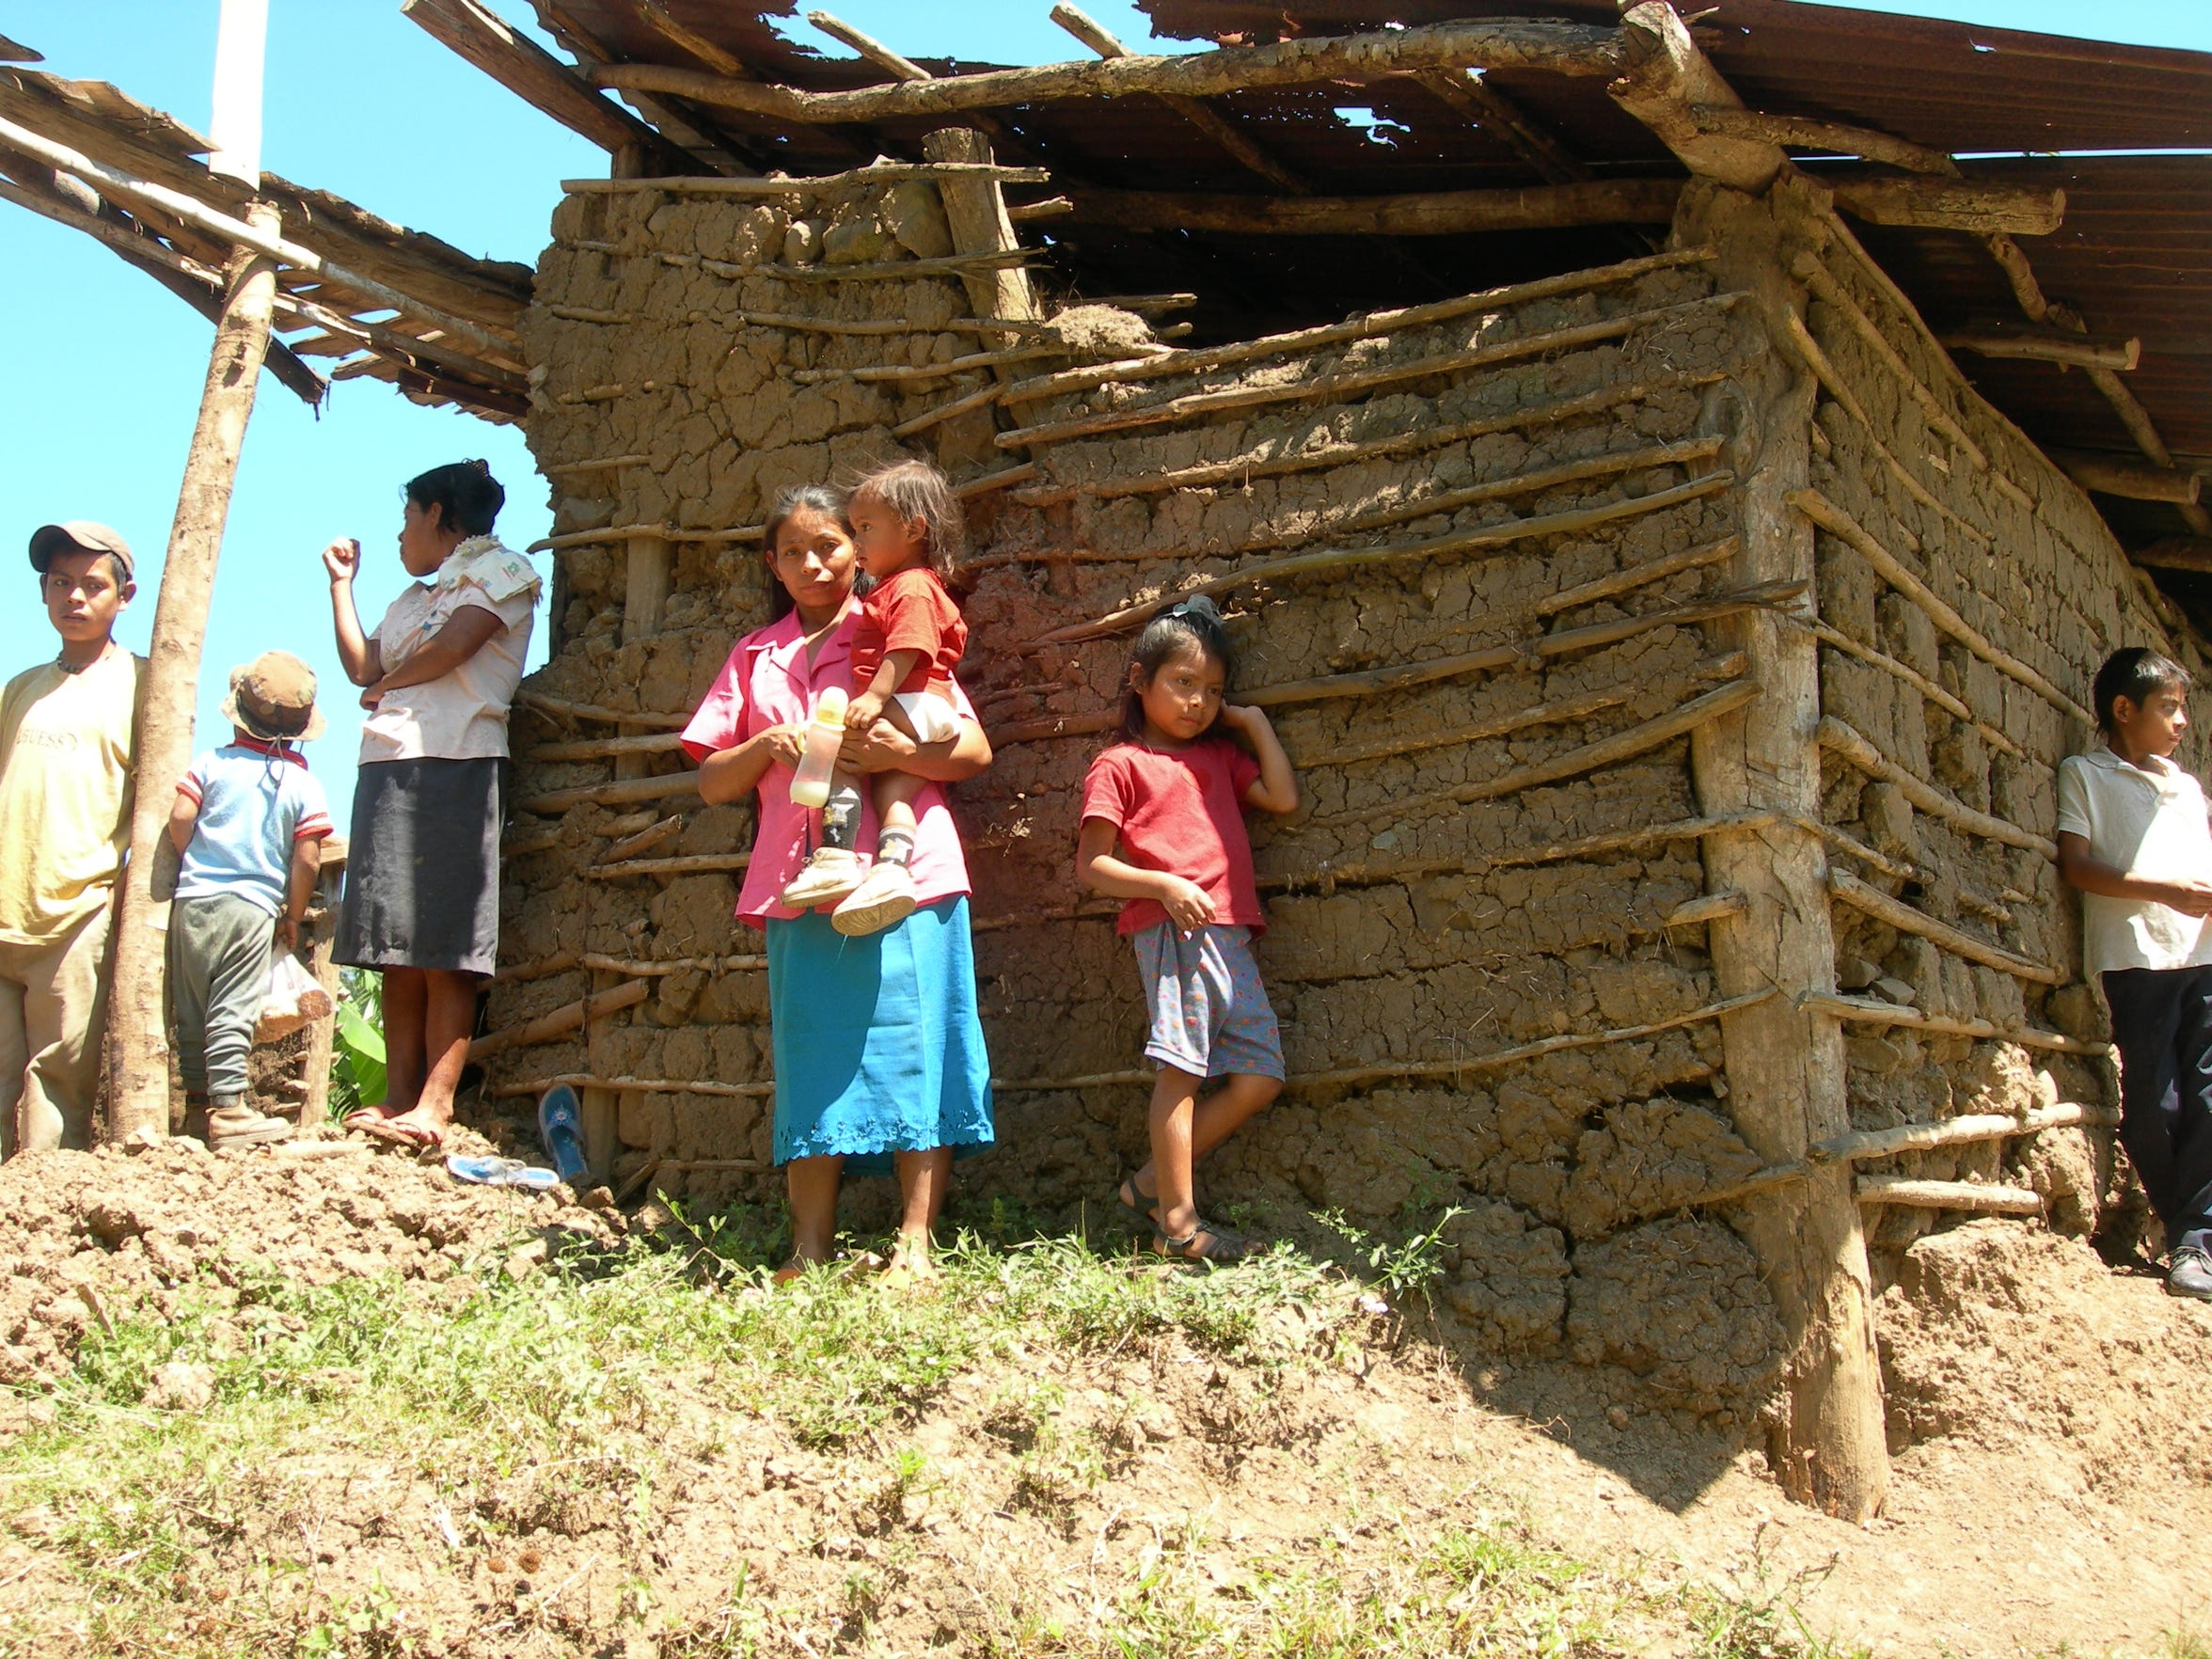 This family lives in a home built of mud and sticks.